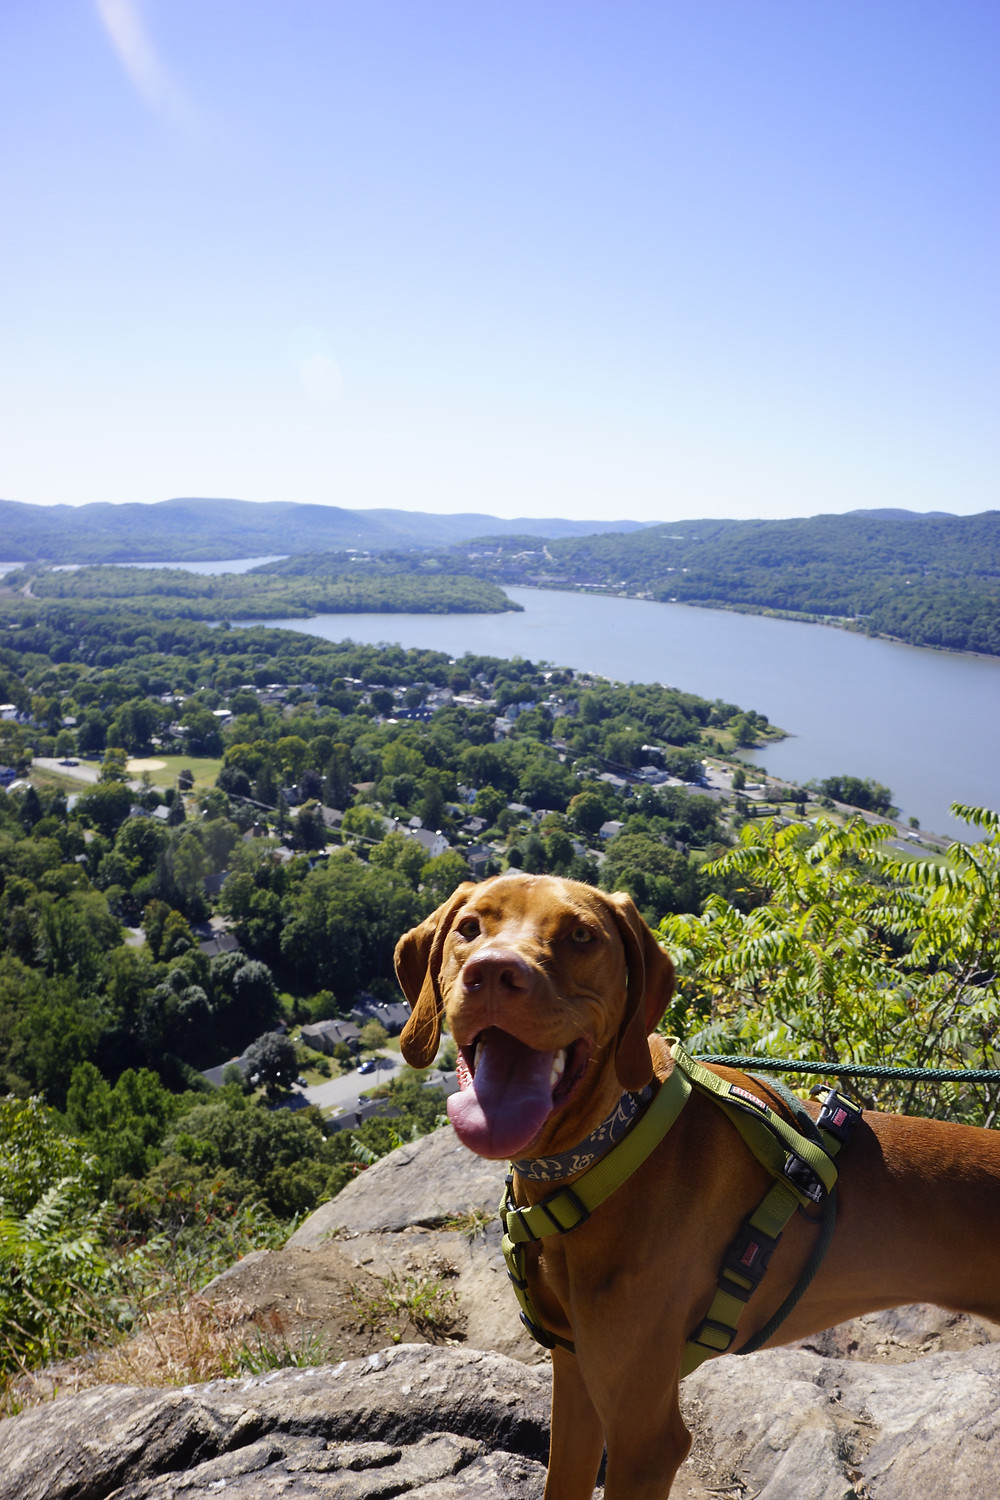 Hiking with Jake and Julia near Cold Spring, NY